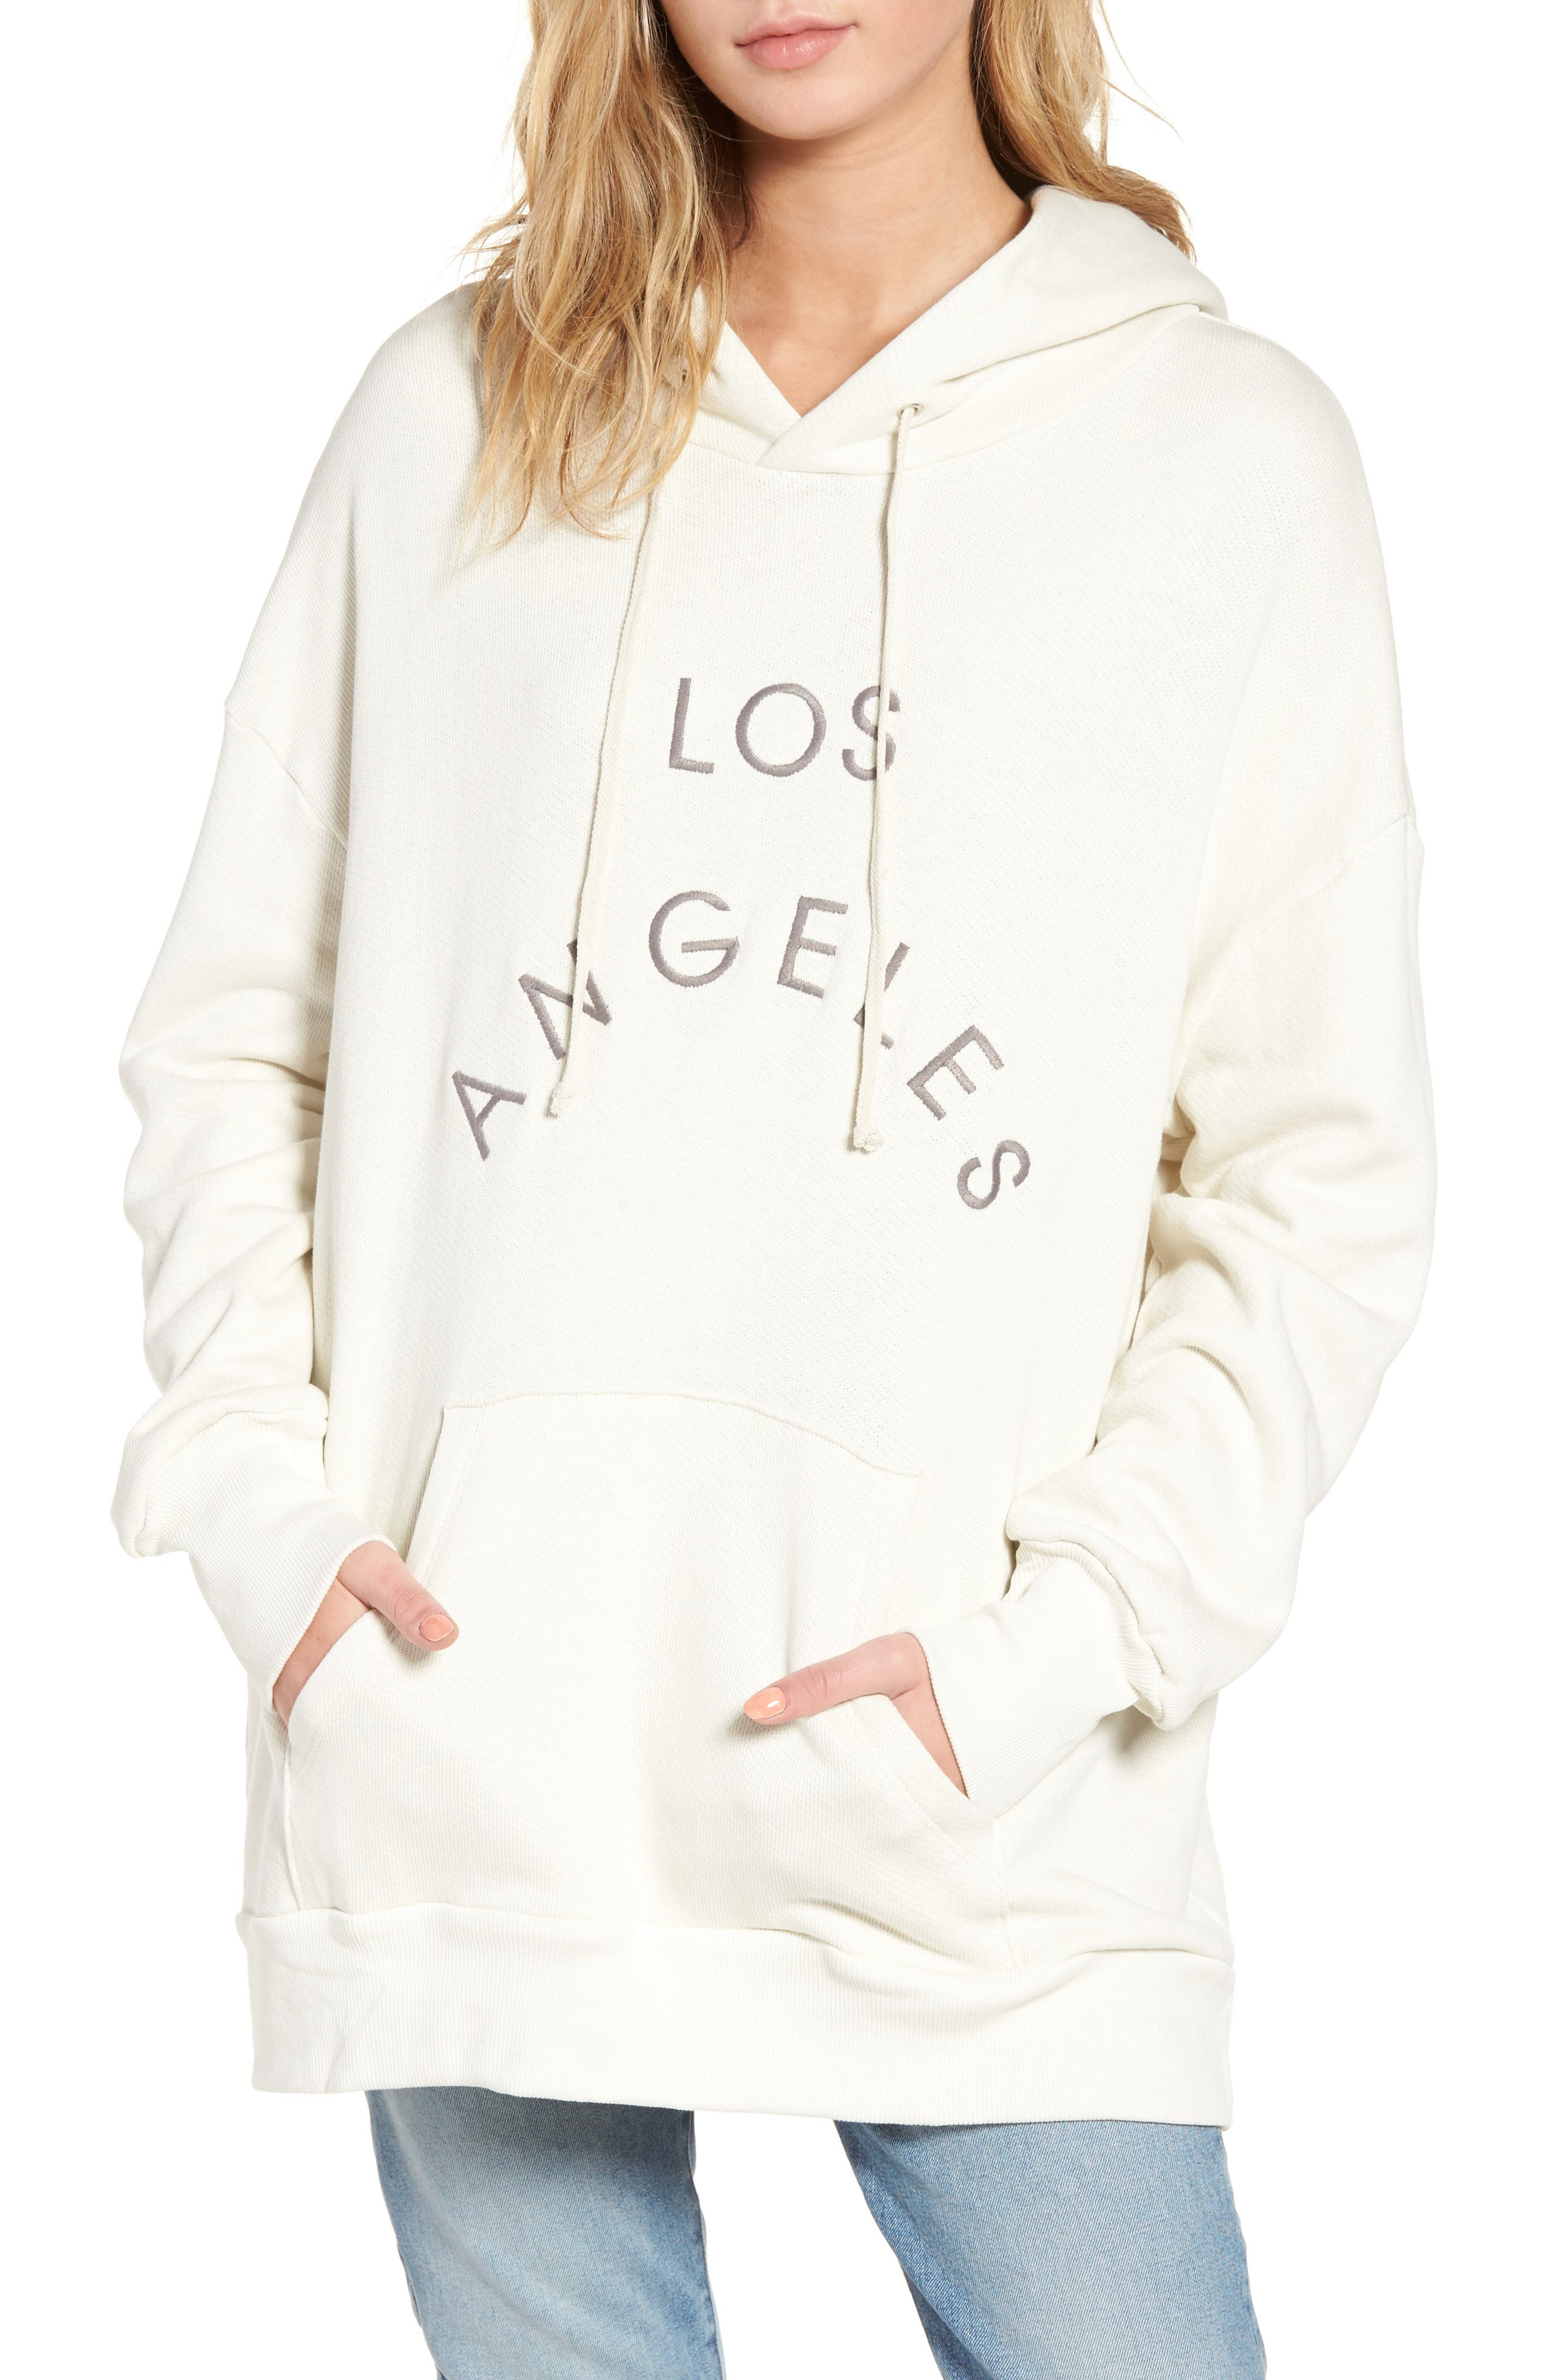 Los Angeles Oversize Hoodie,                             Main thumbnail 1, color,                             901